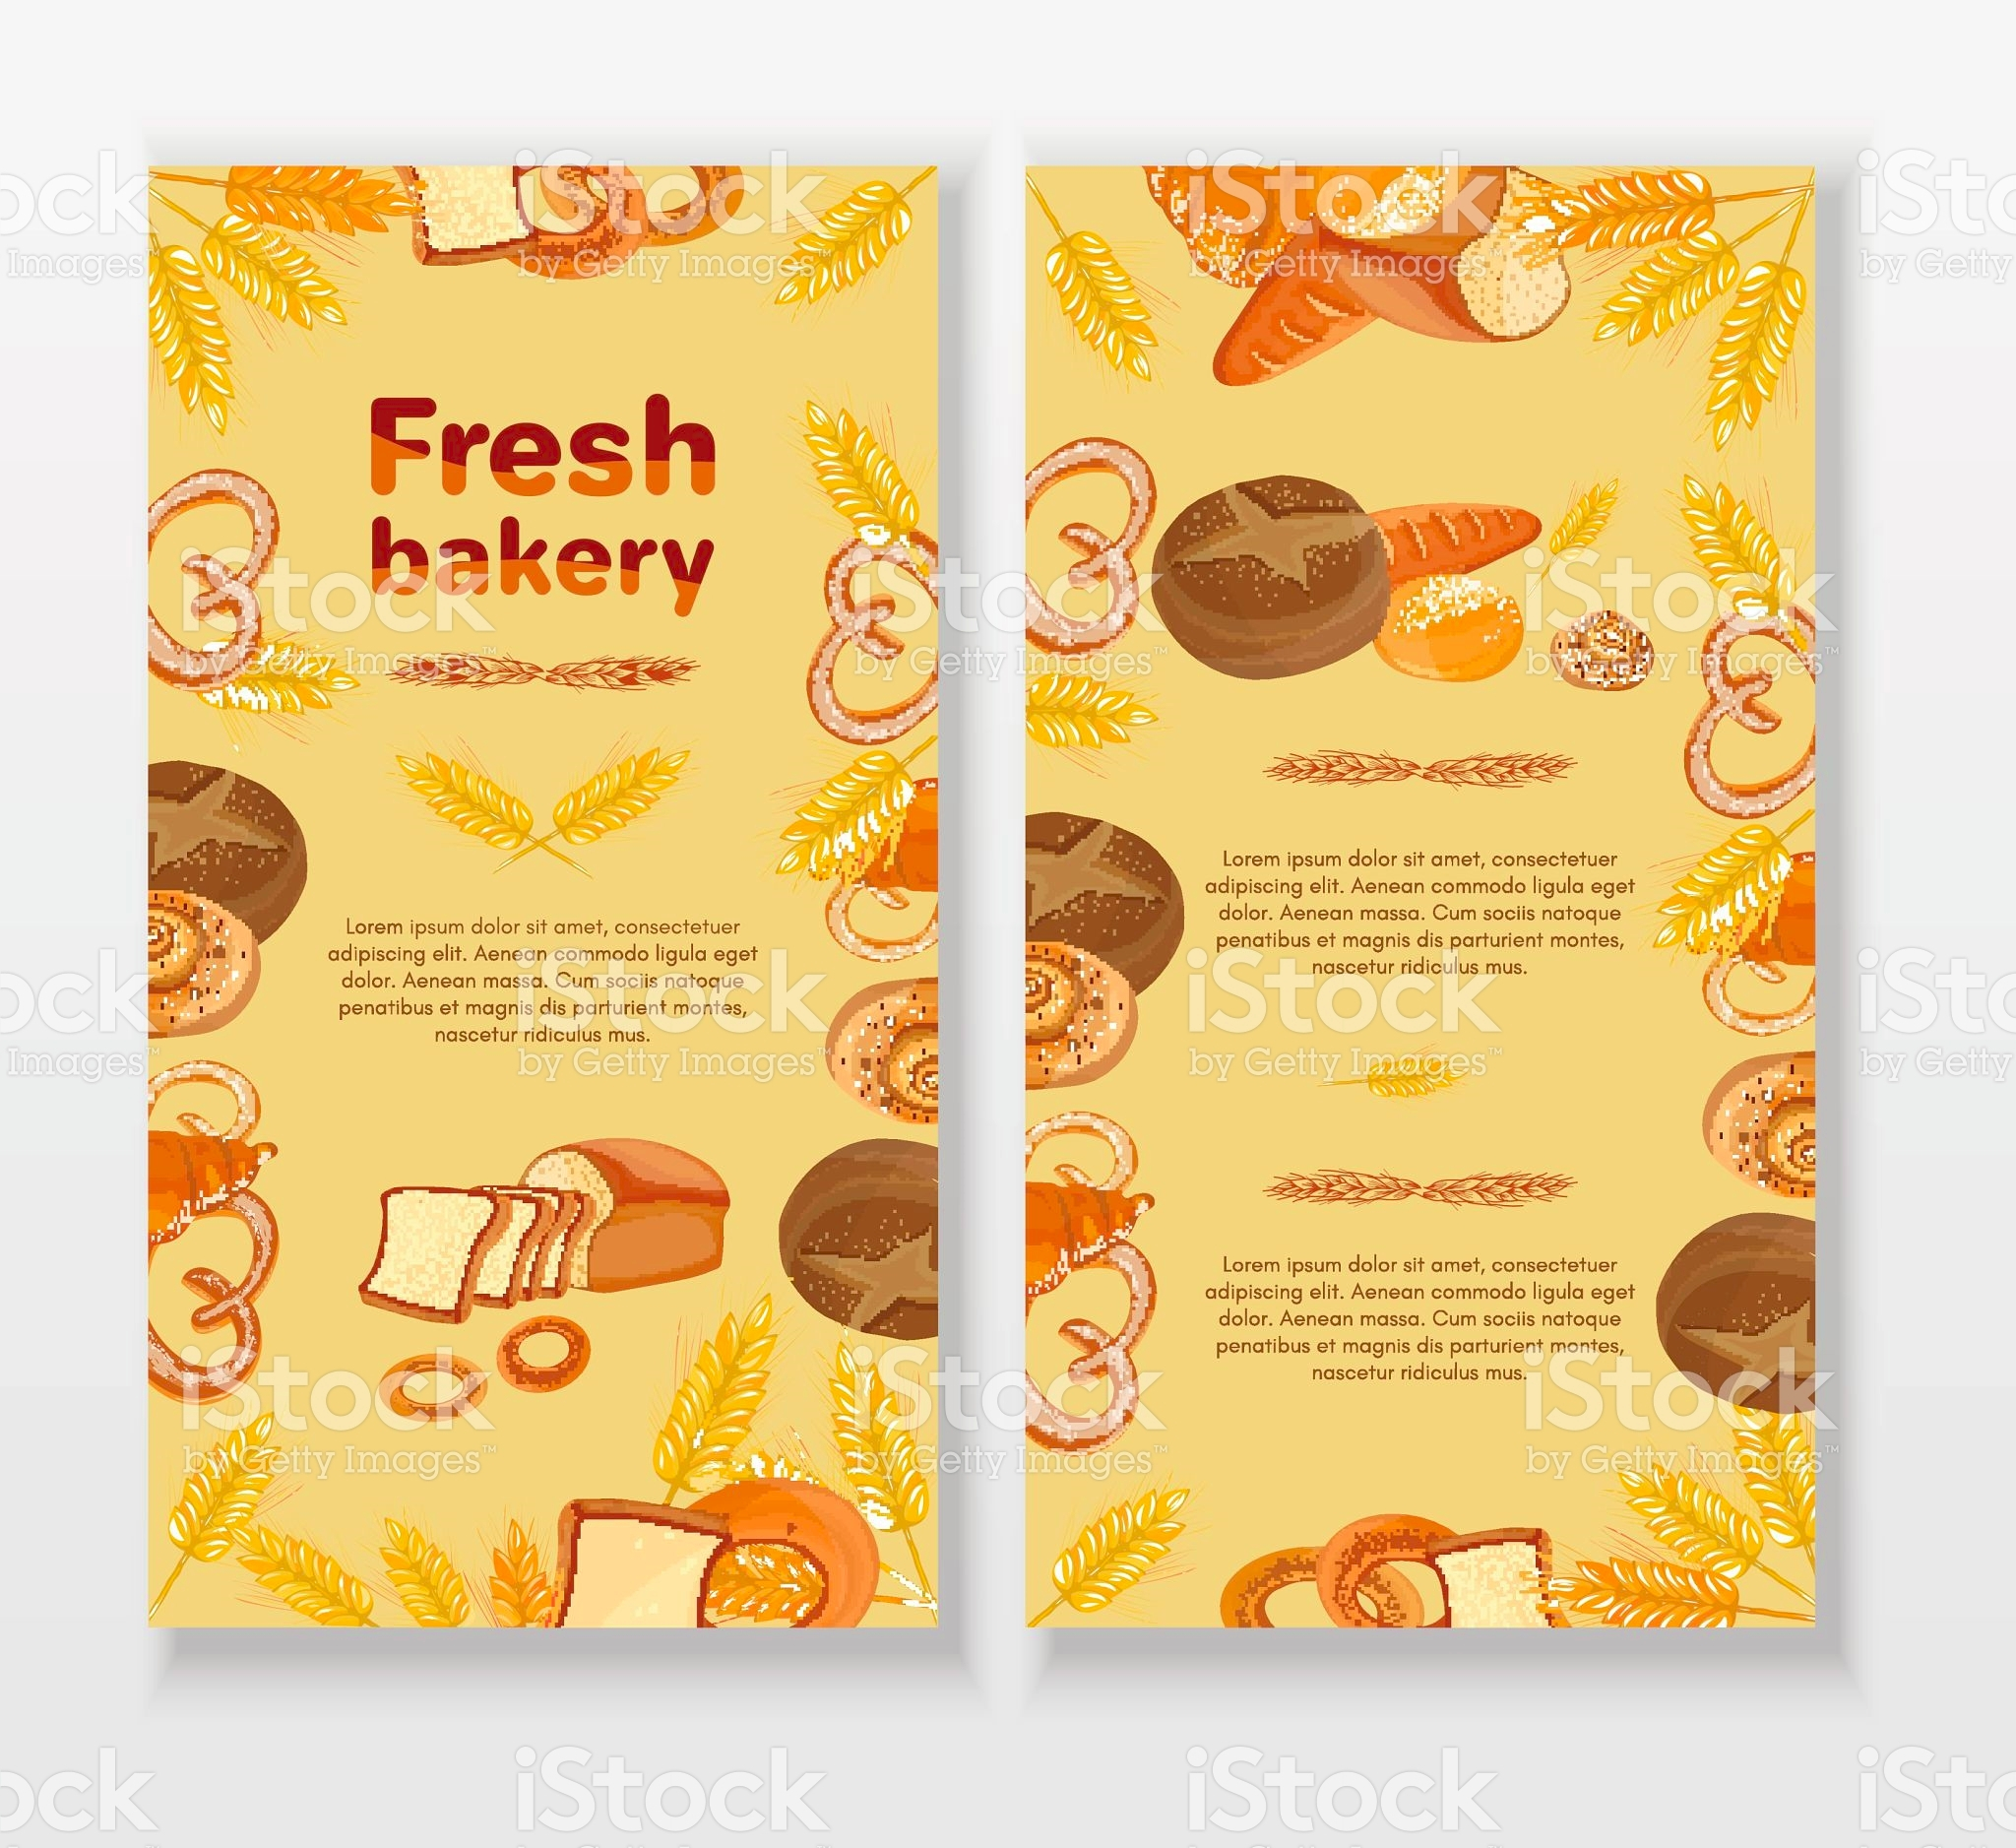 fresh bakery menu